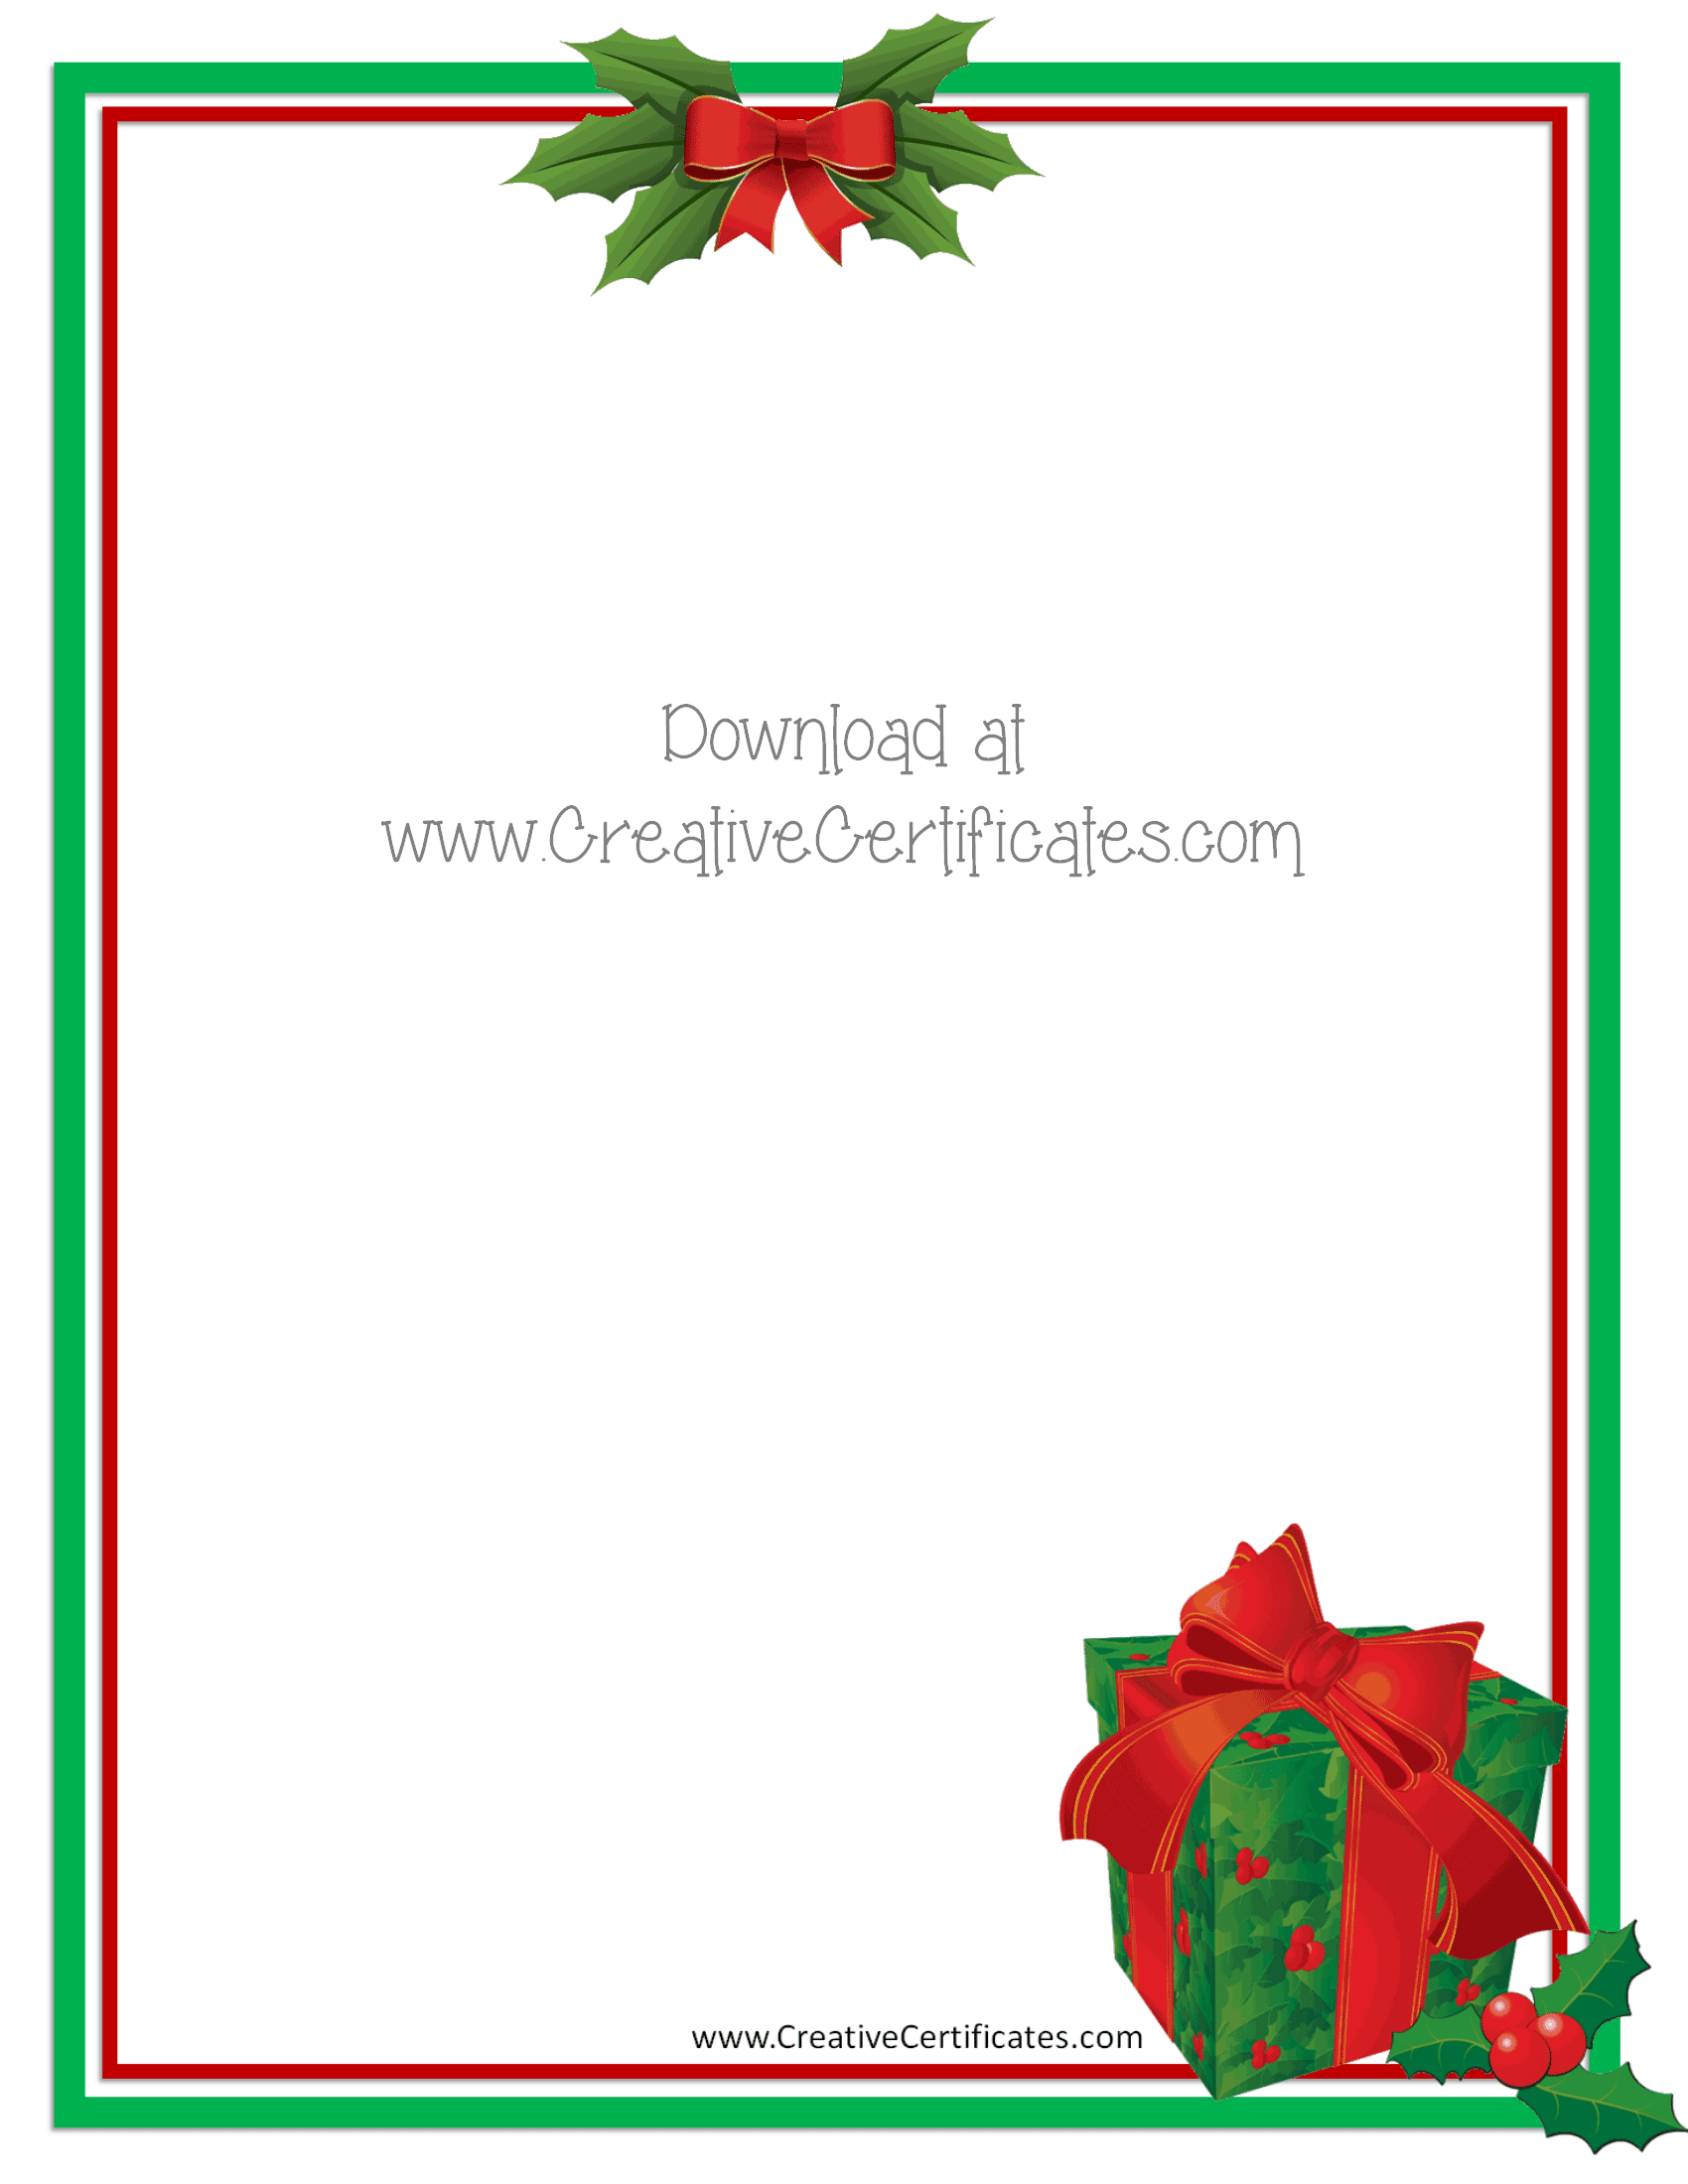 Free christmas border templates customize online then download green and red border with a clip art picture of a gift yelopaper Images